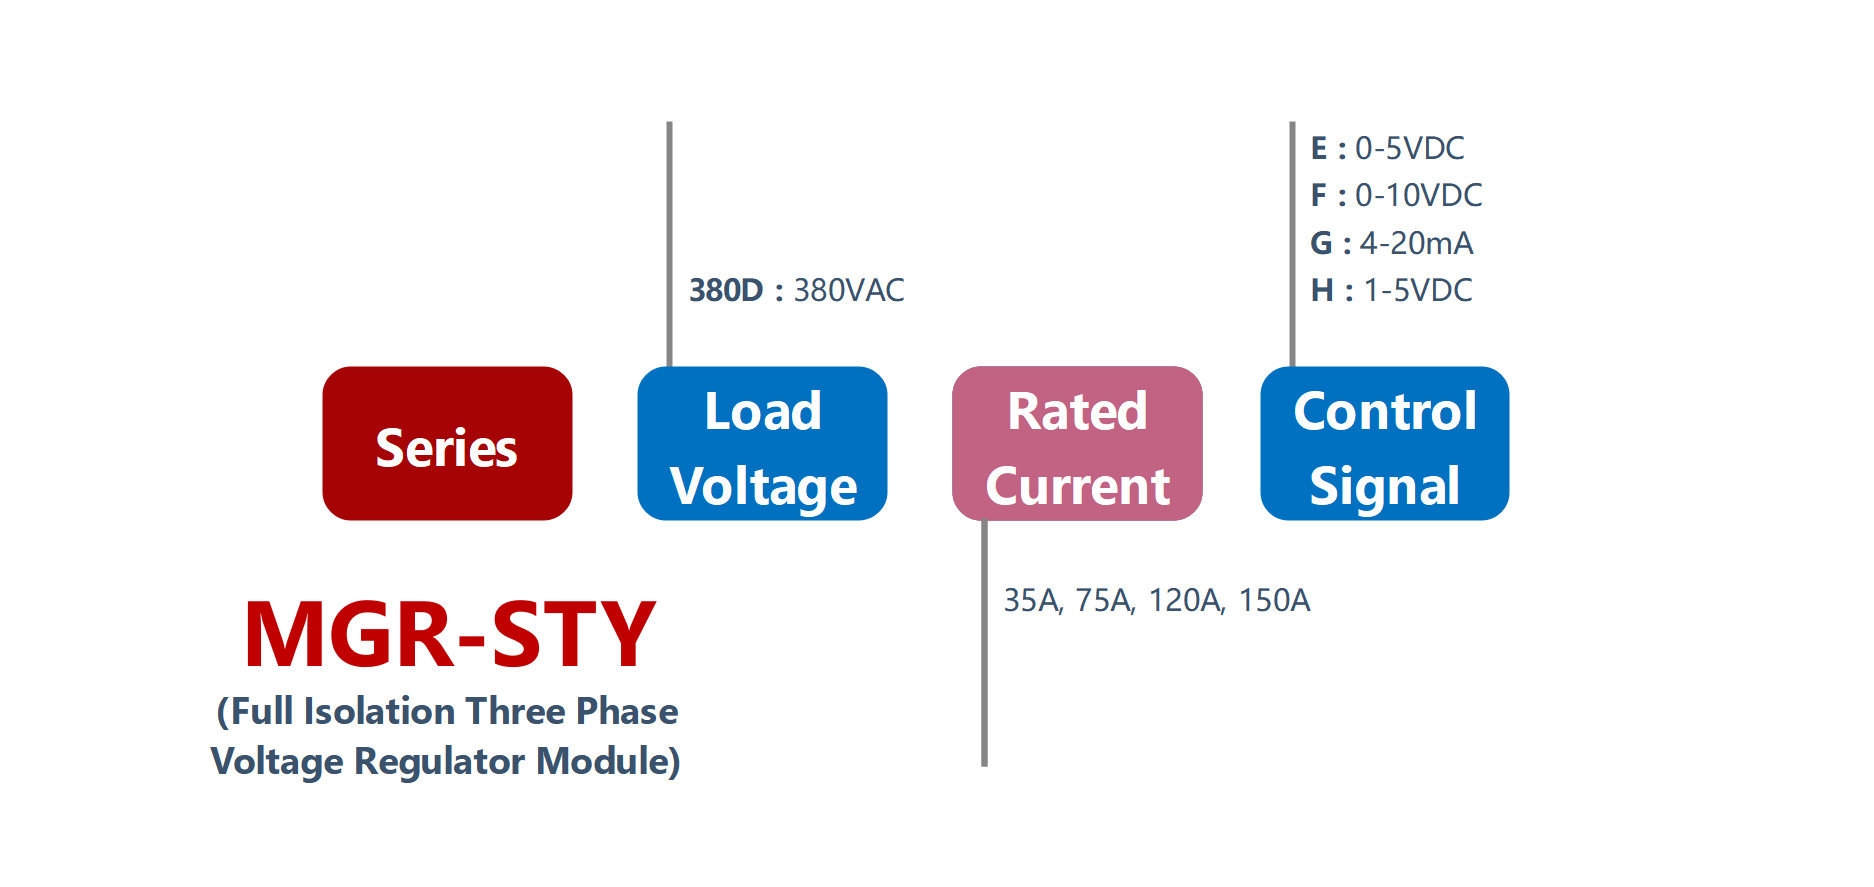 How to order MGR-STY Series Voltage Power Regulator